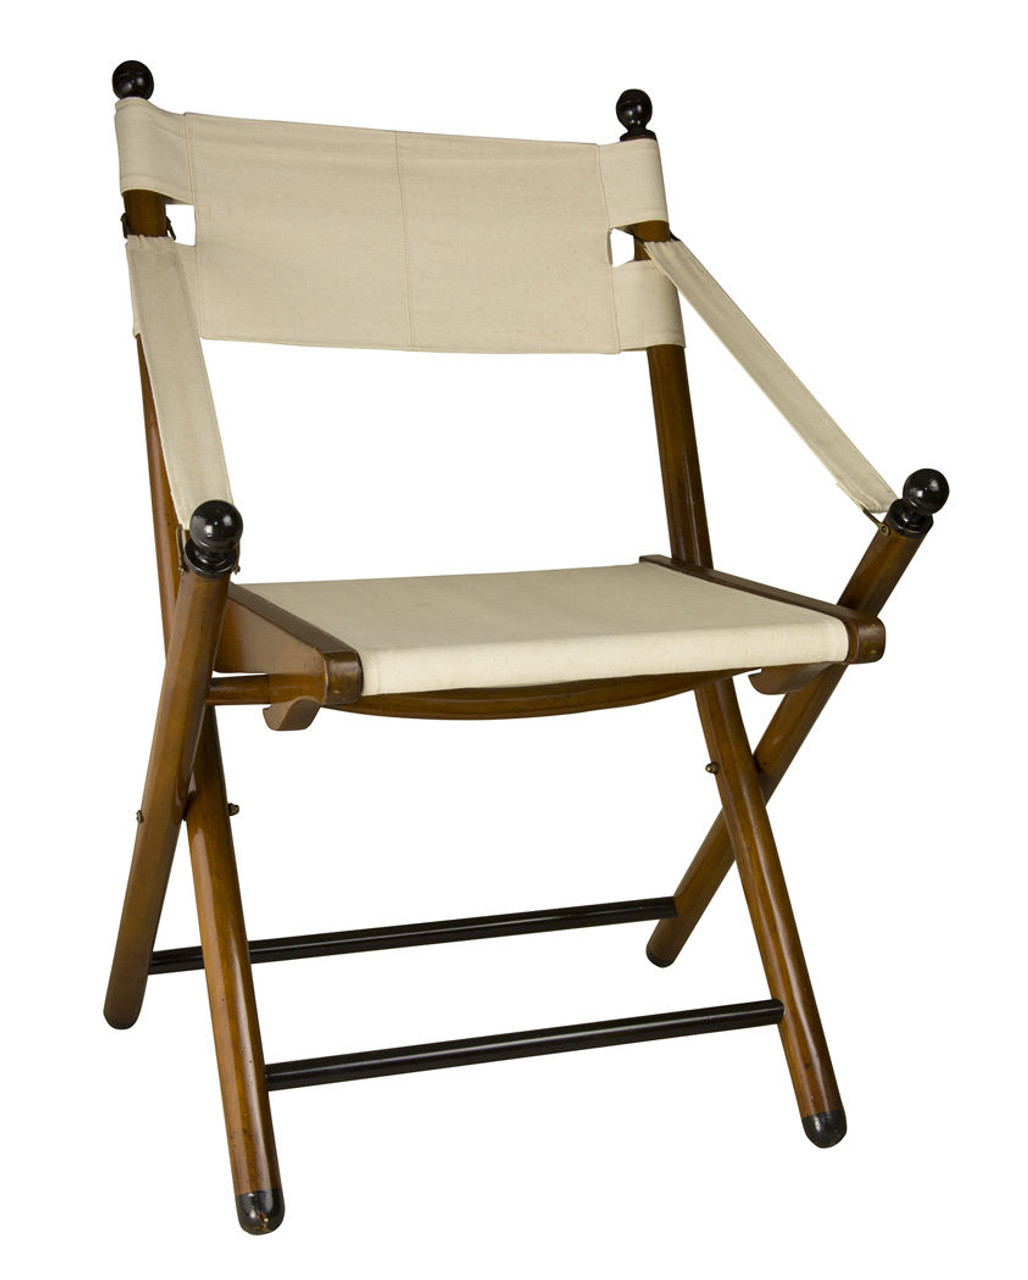 Peachy Campaign Nautical Folding Chair Onthecornerstone Fun Painted Chair Ideas Images Onthecornerstoneorg